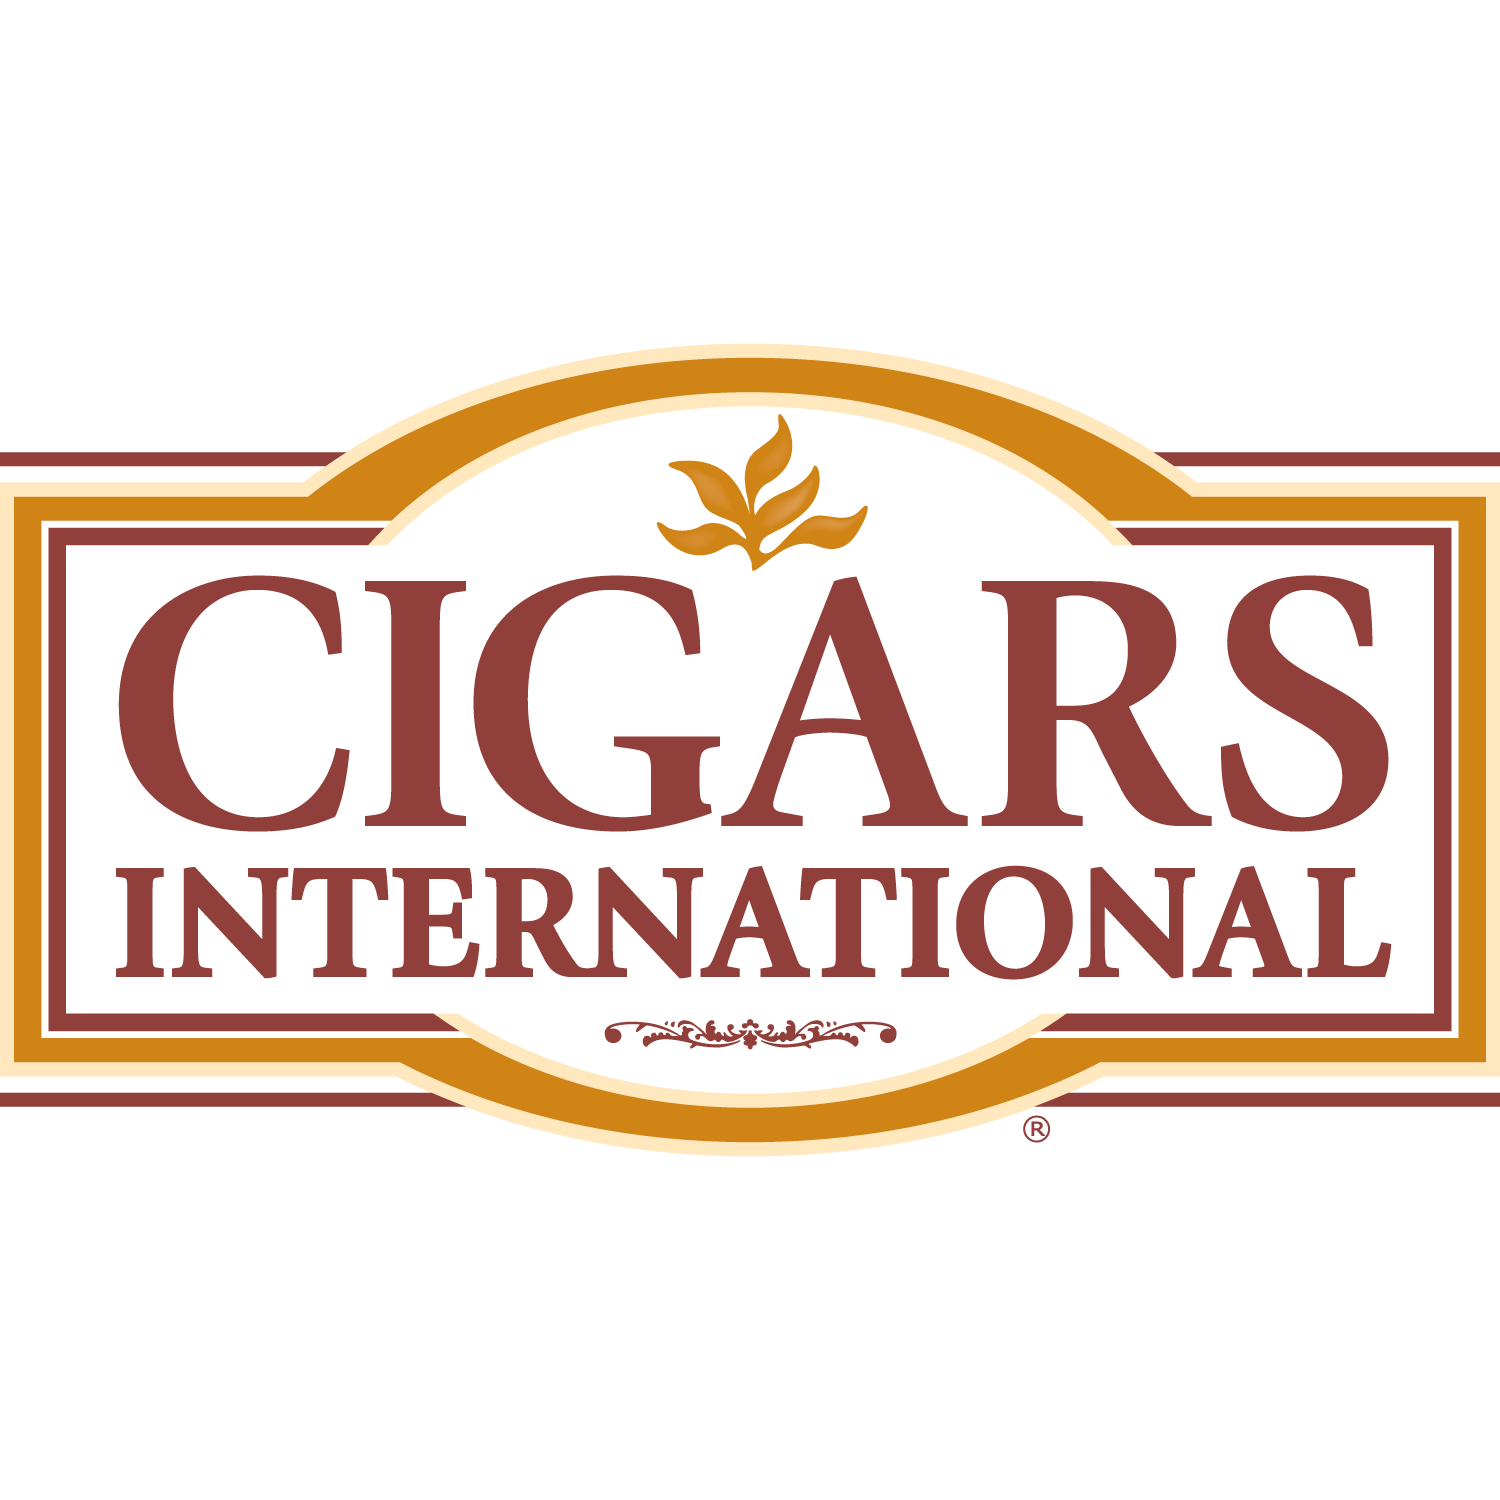 fb_cigars_international